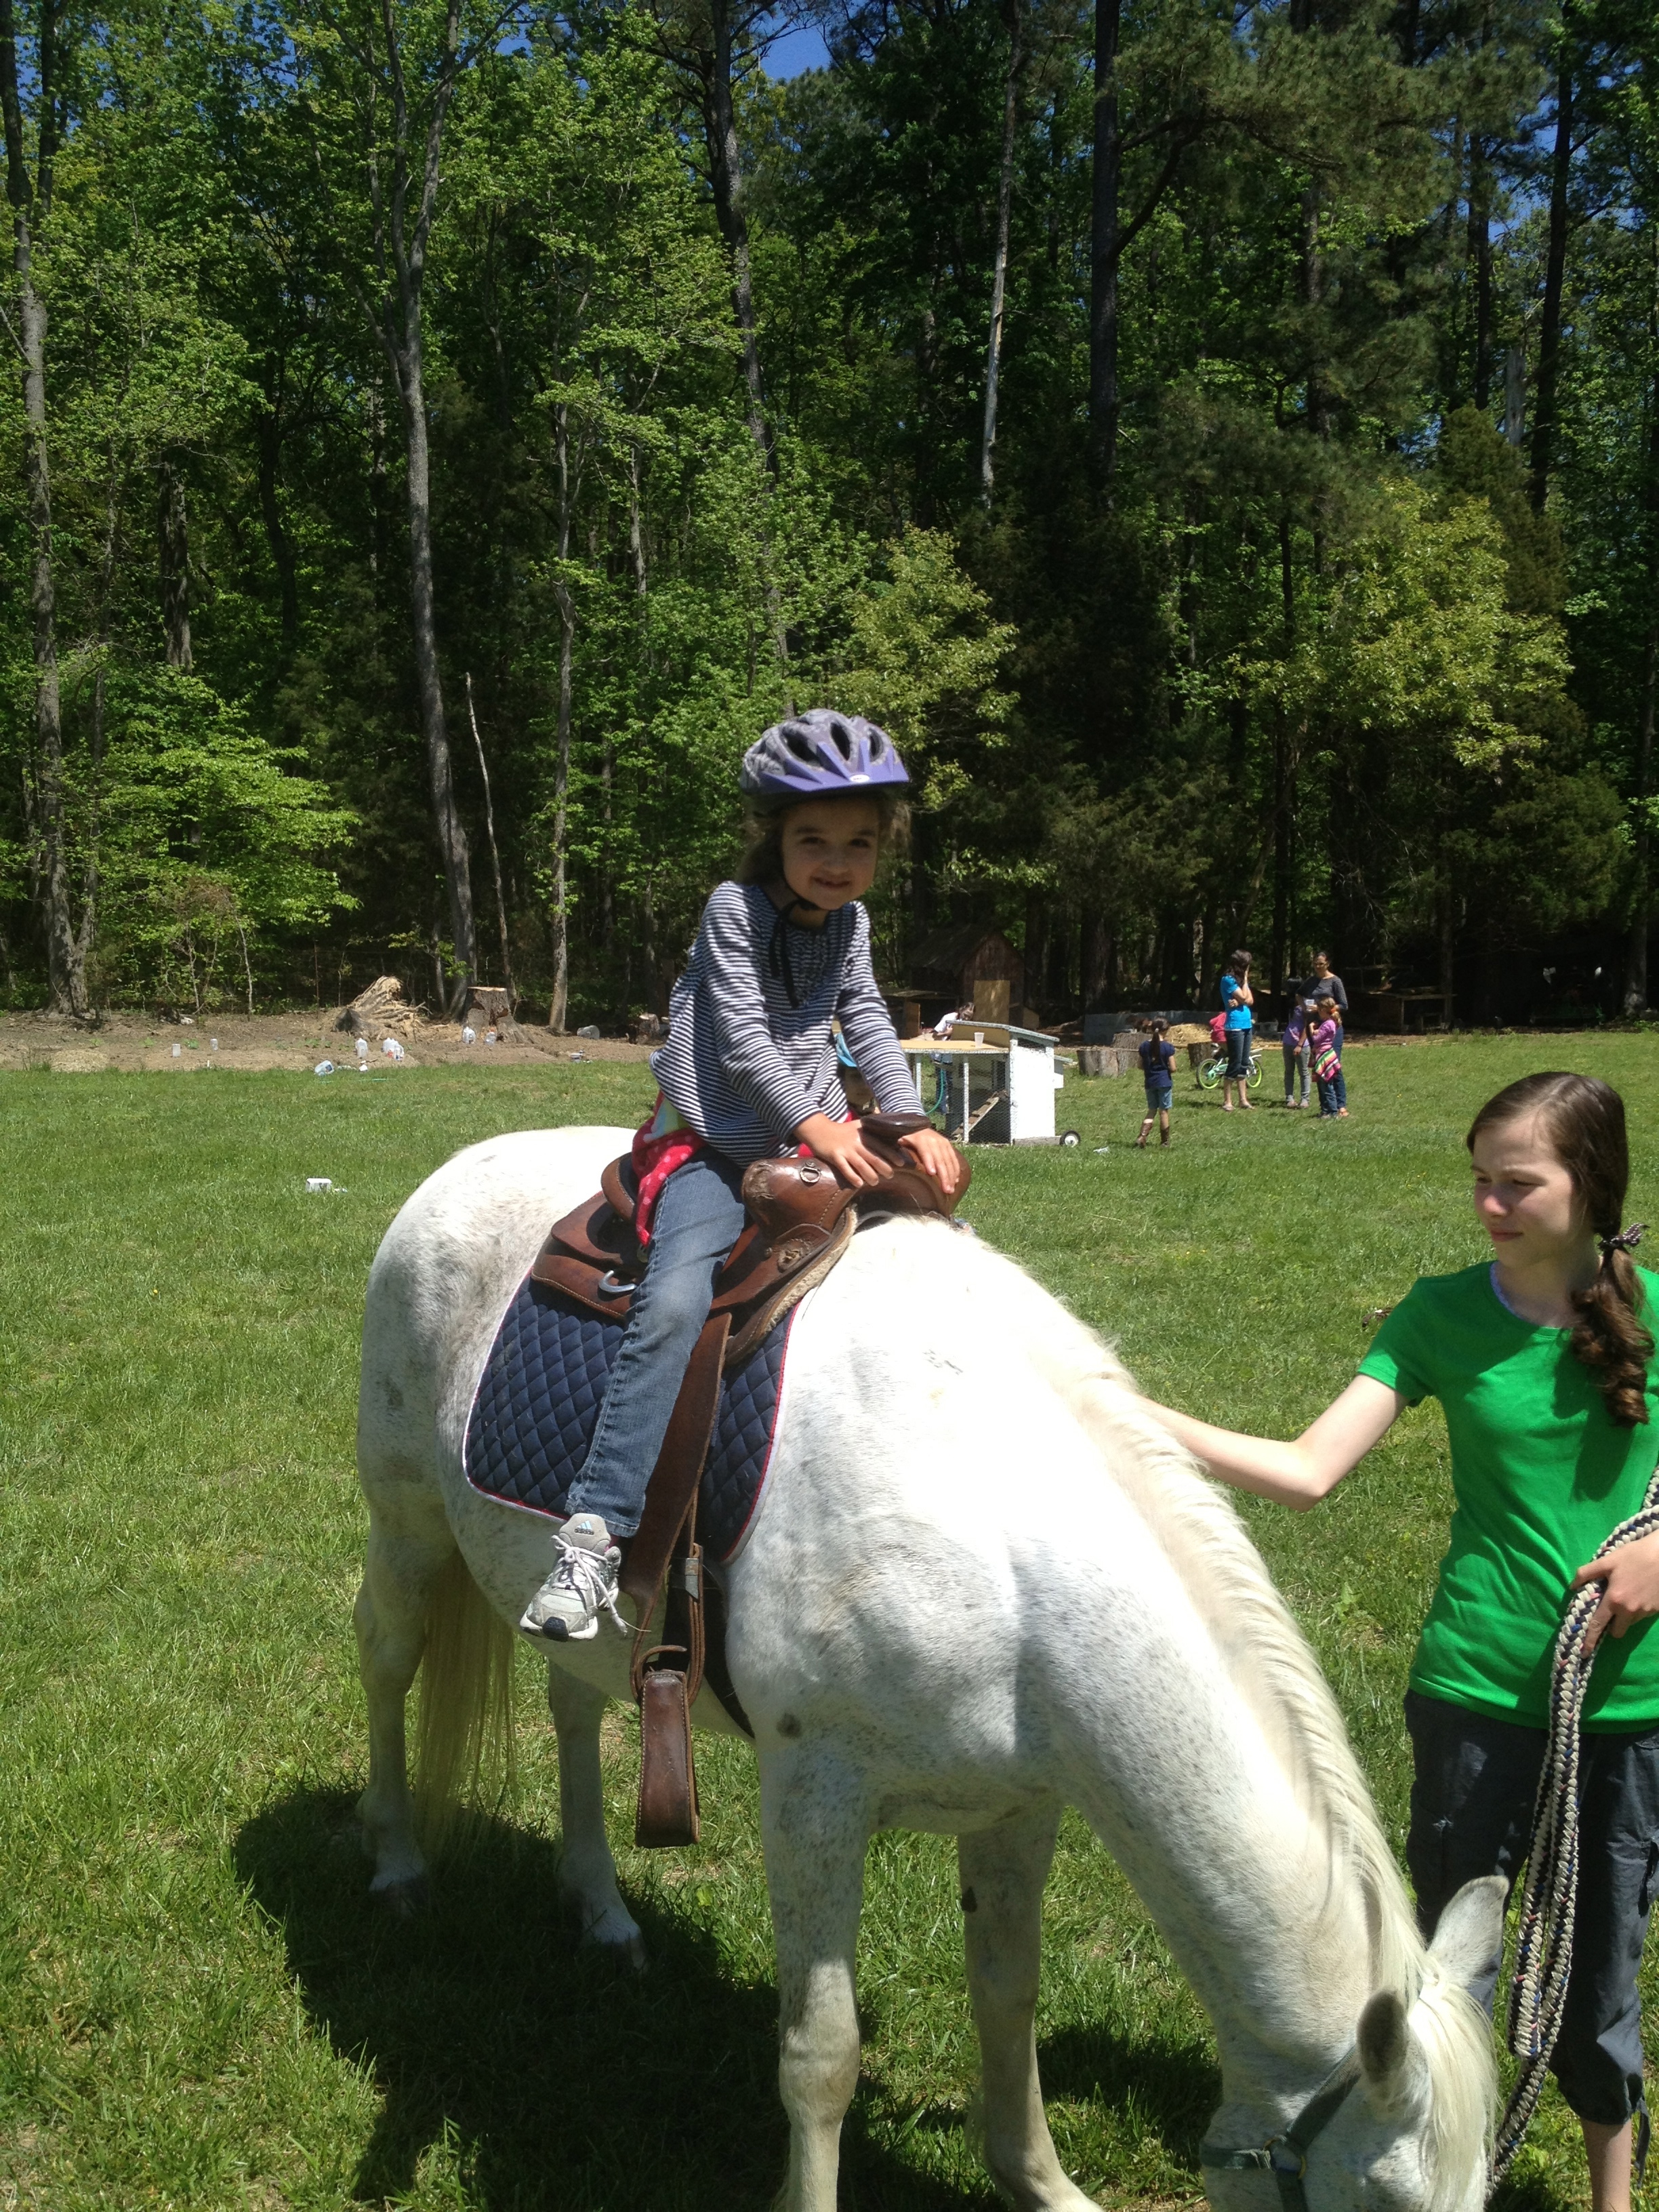 Riding the Migiliore's horse was a great memory.